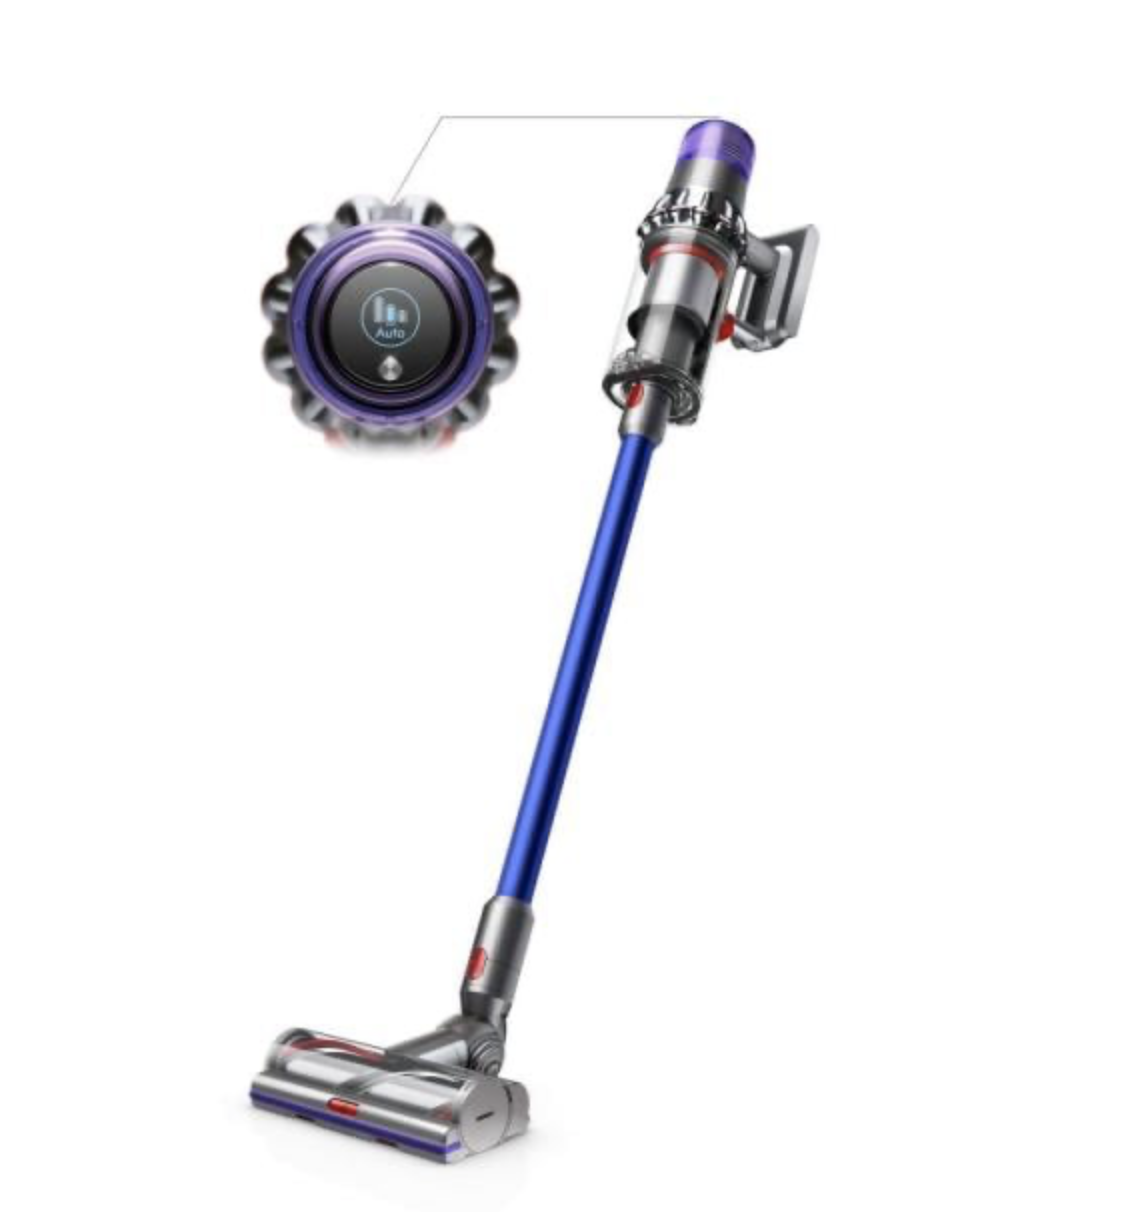 Home Depot: Select Vacuums on sale!